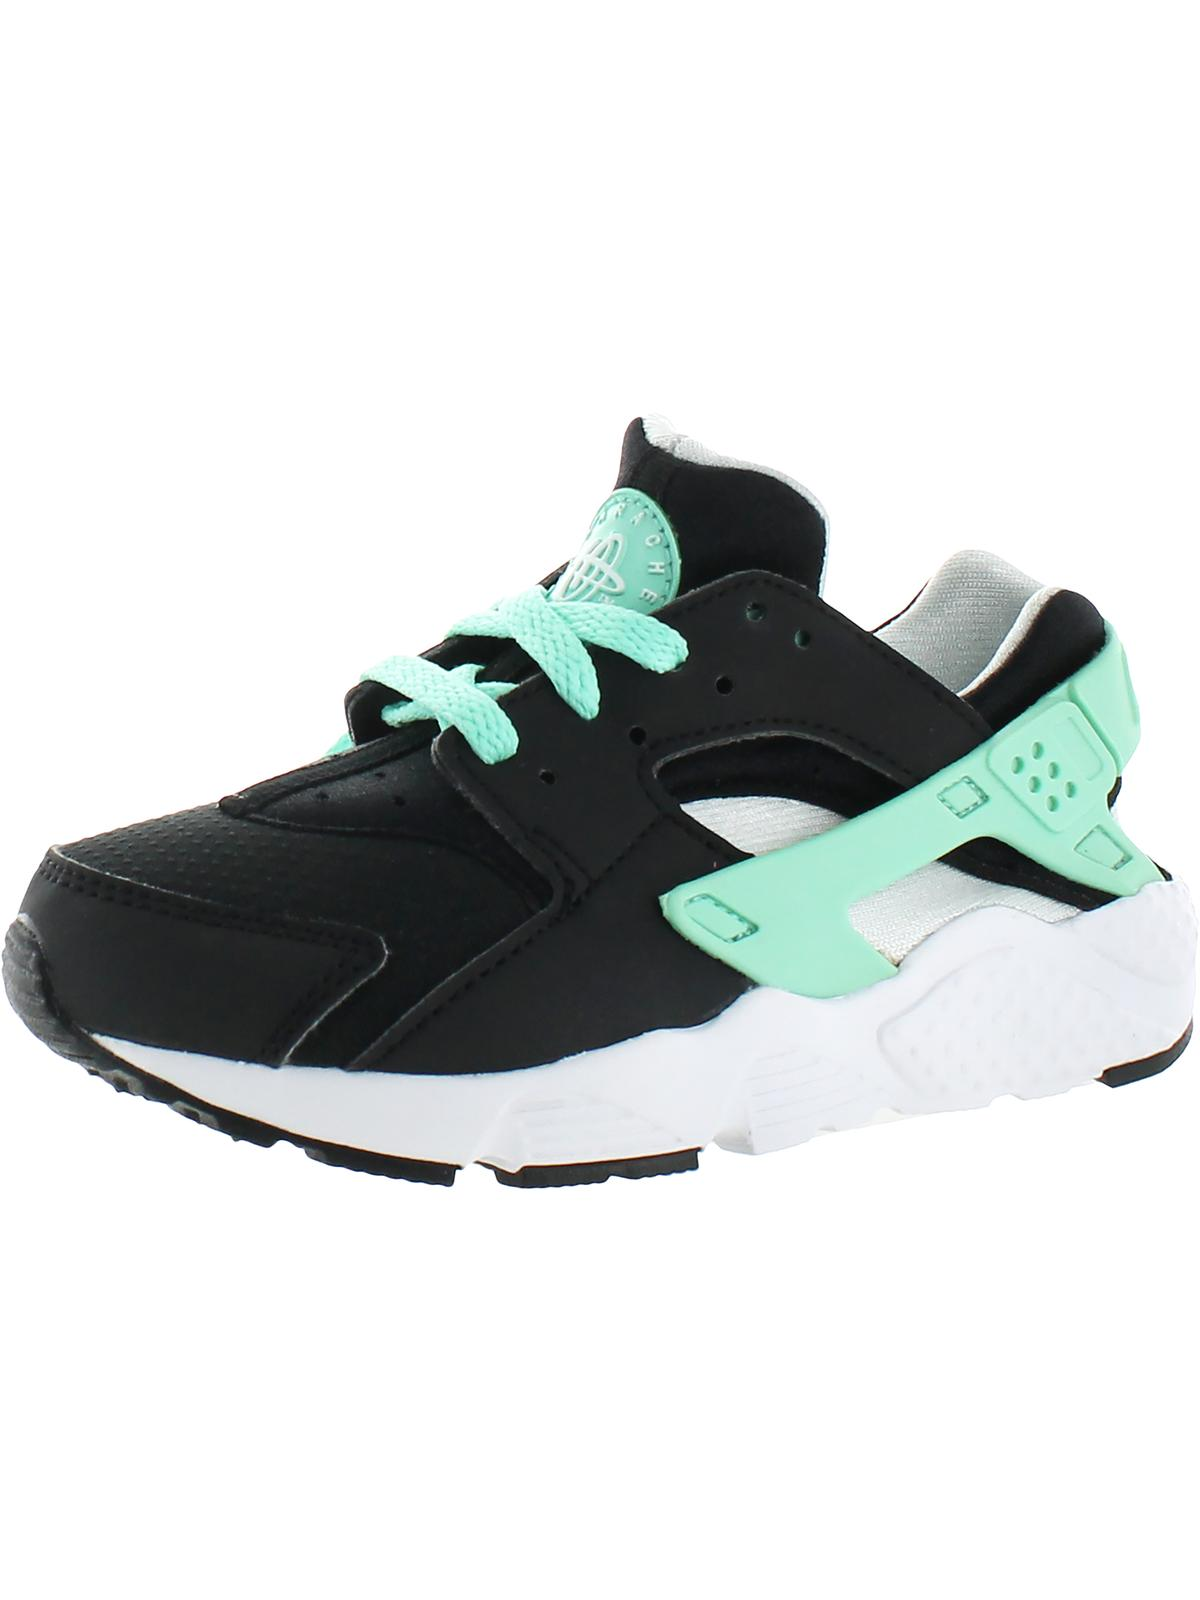 Nike Boys Huarache Run Little Kid Running Shoes Black 10.5 Medium (D)...